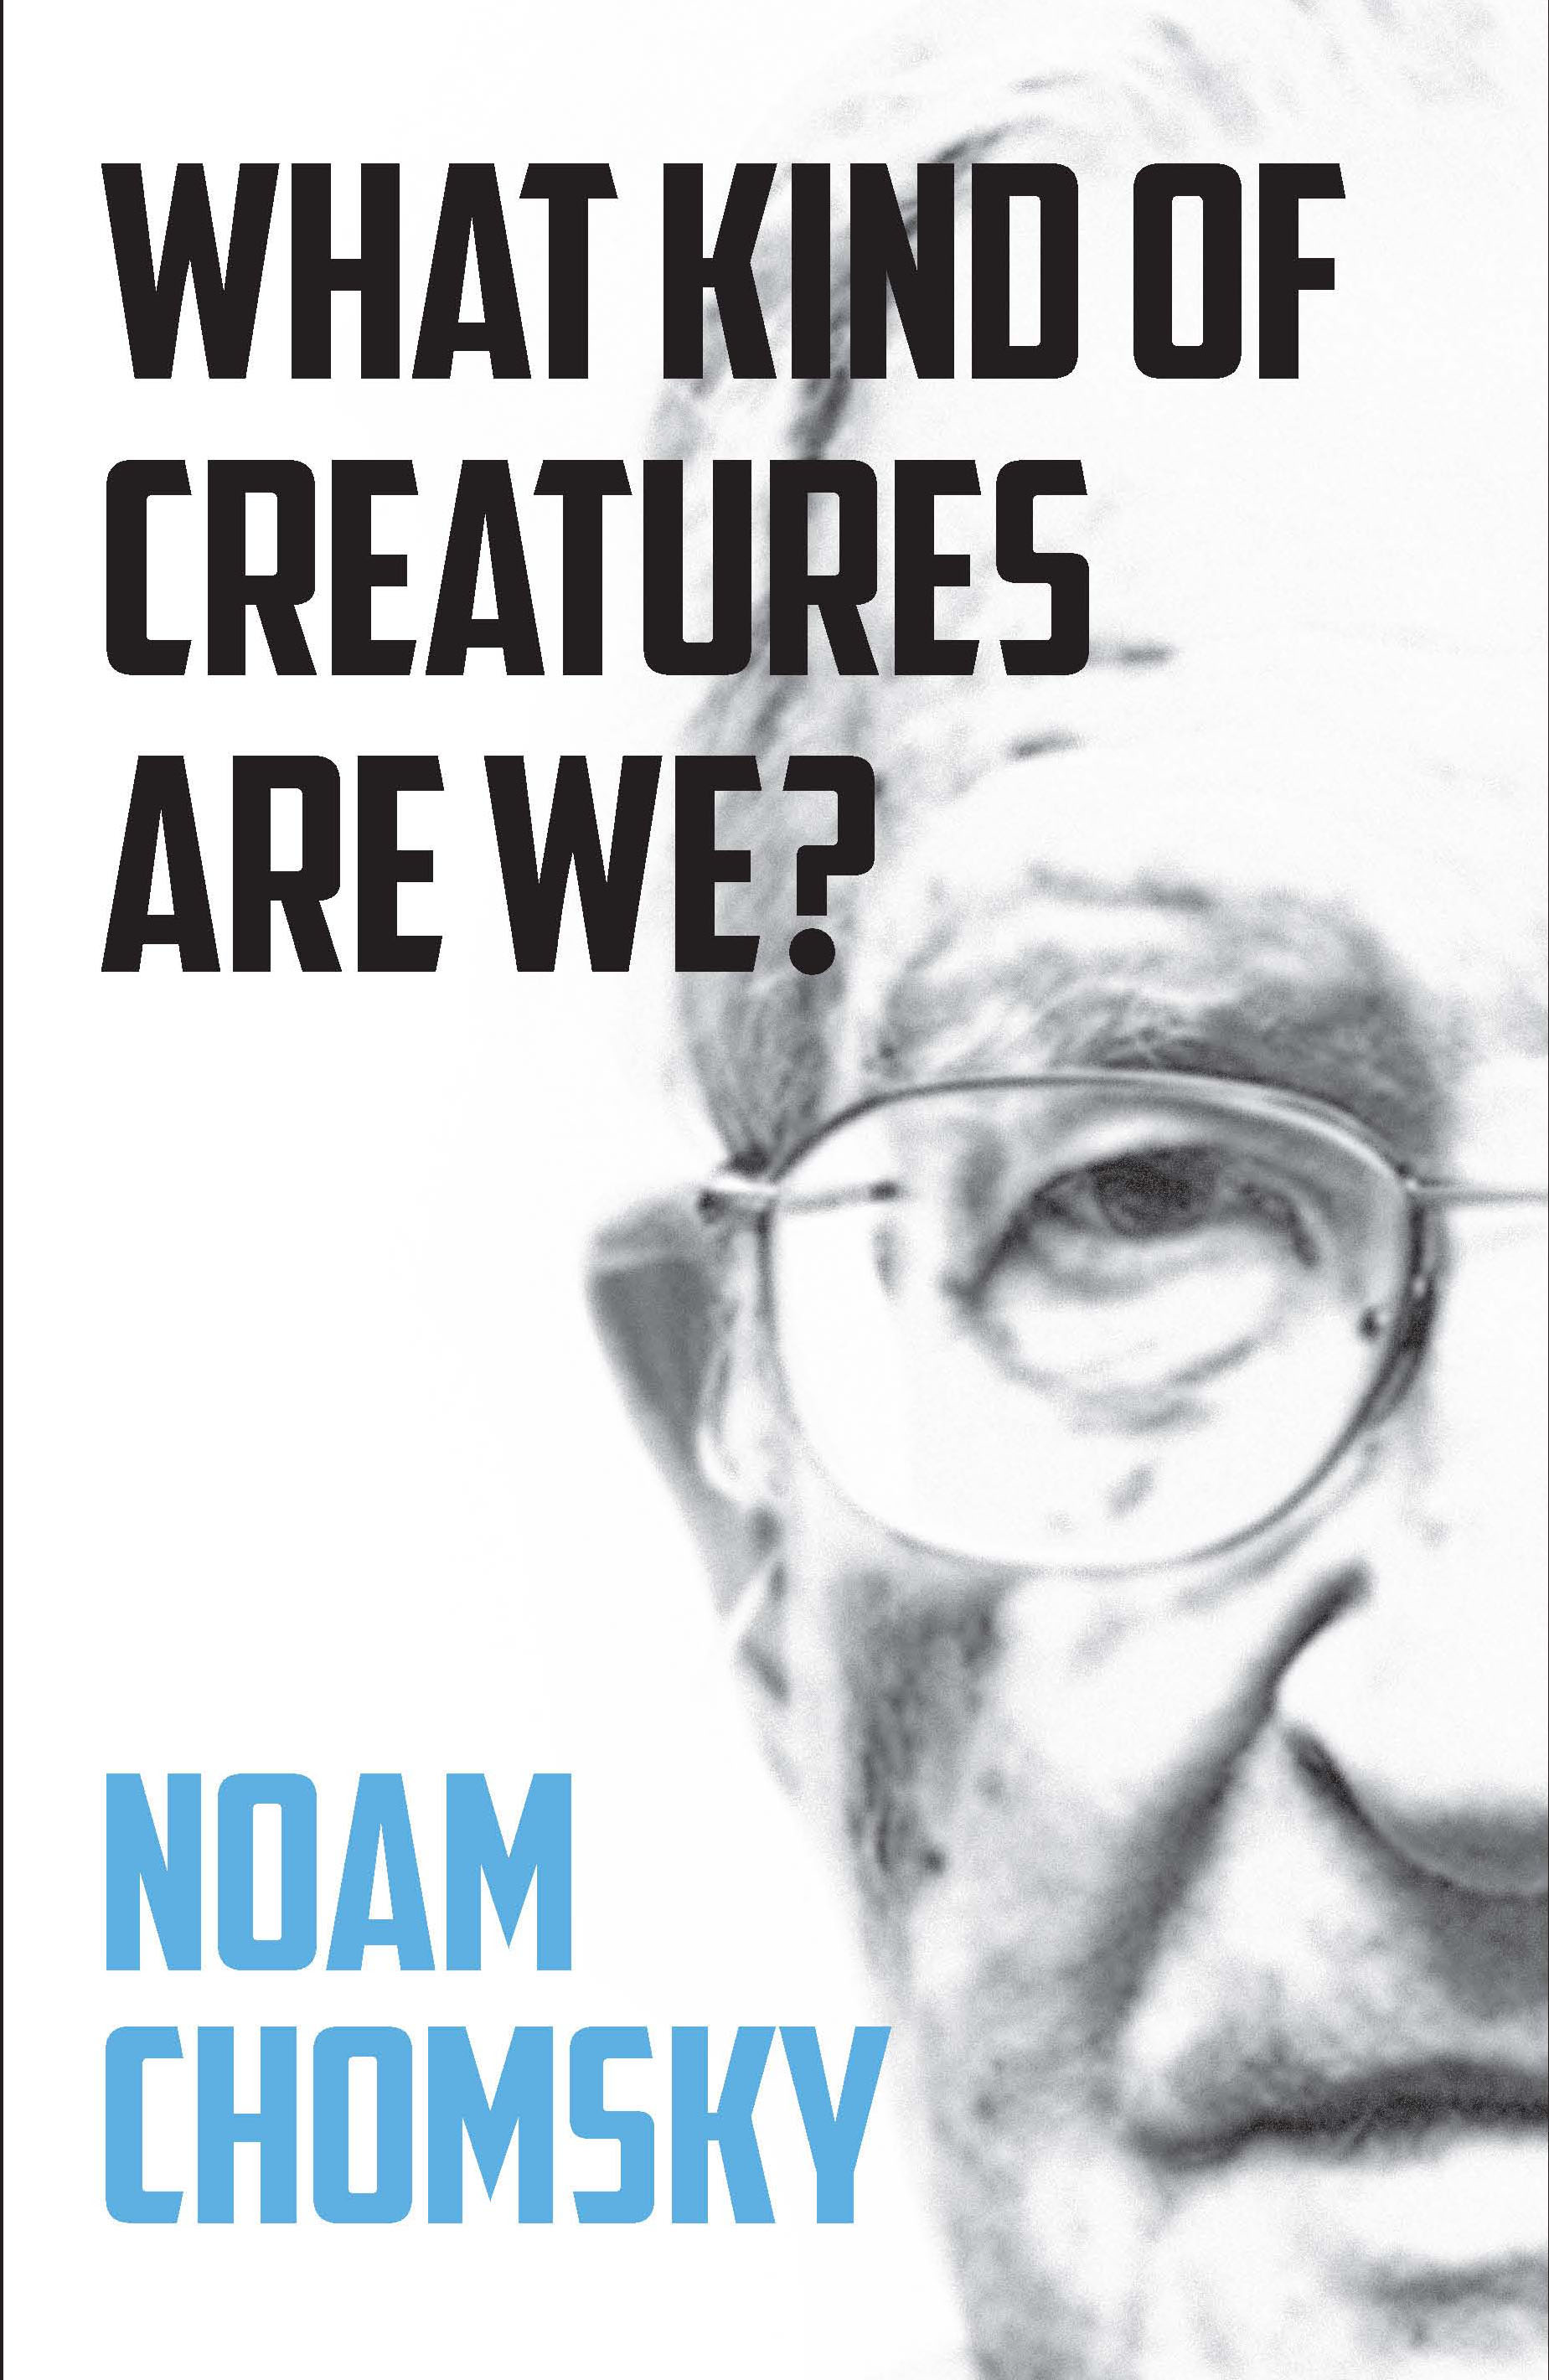 An interview with Noam Chomsky on his book 'What Kind of Creatures Are We?' by Idan Landau